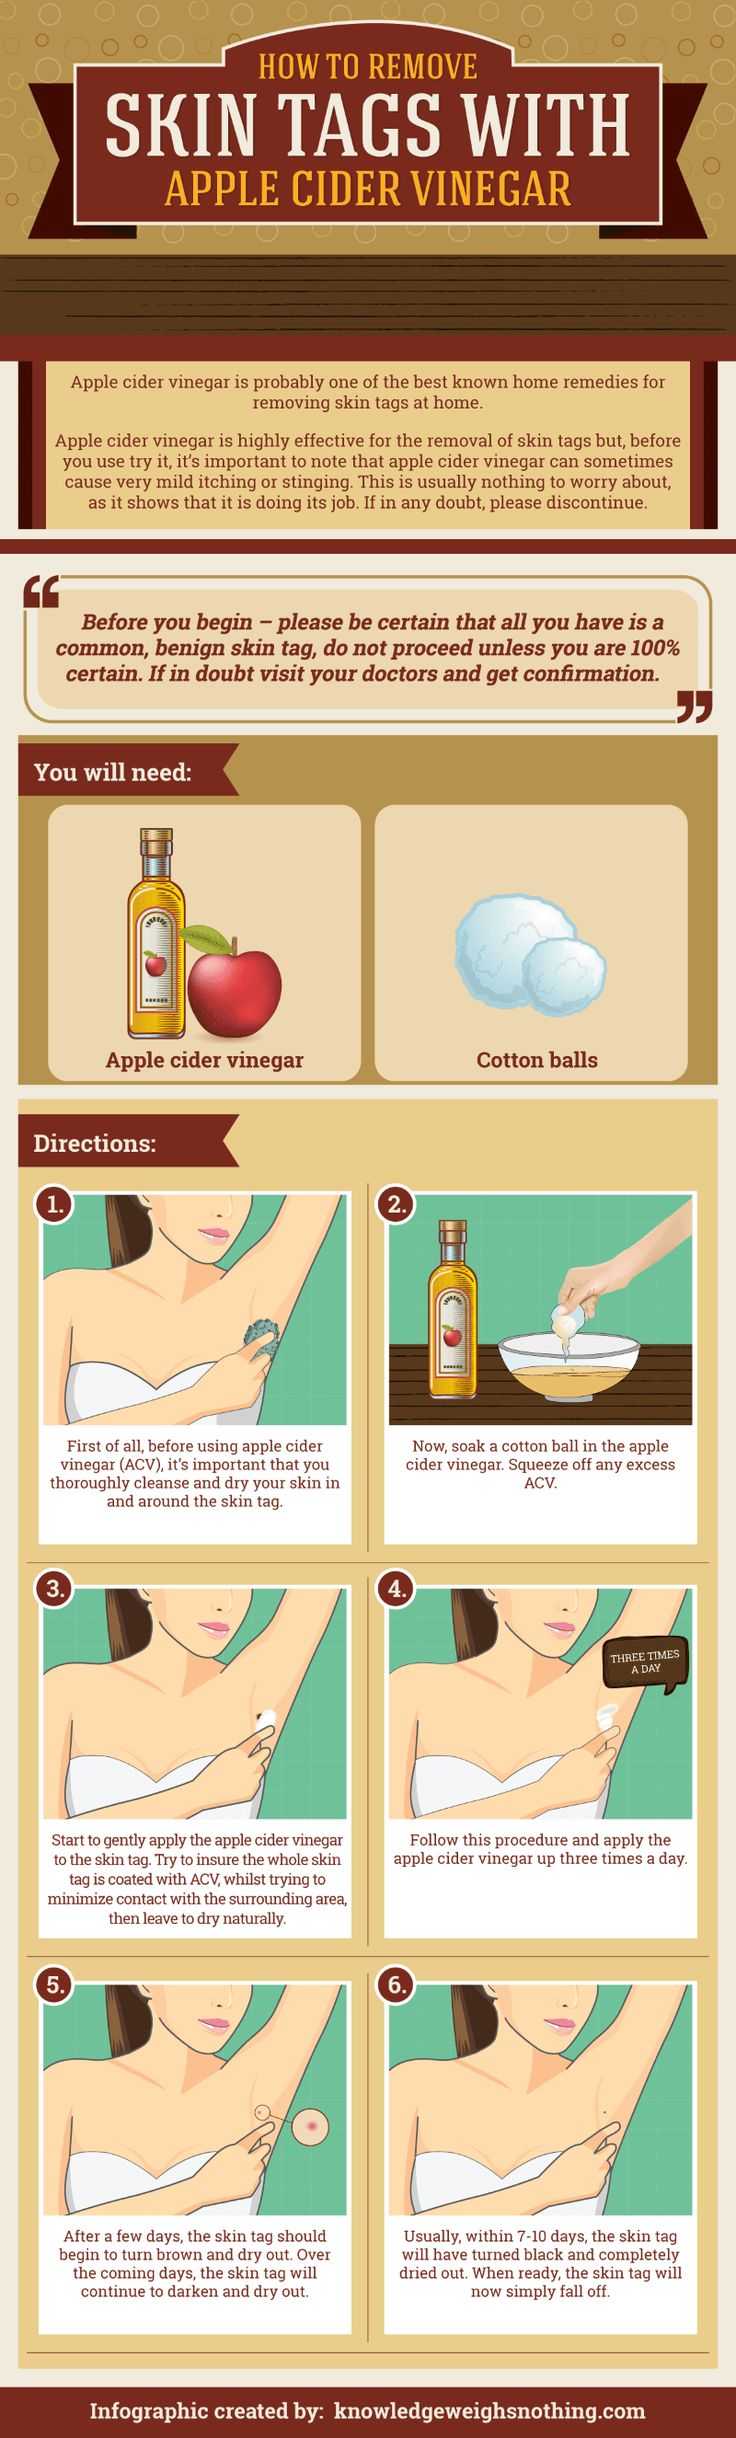 Remove skin tags at home with these 11 home remedies for skin tags. Includes advice on the 'TagBand skin tag remover' device. Get rid of skin tags for good.